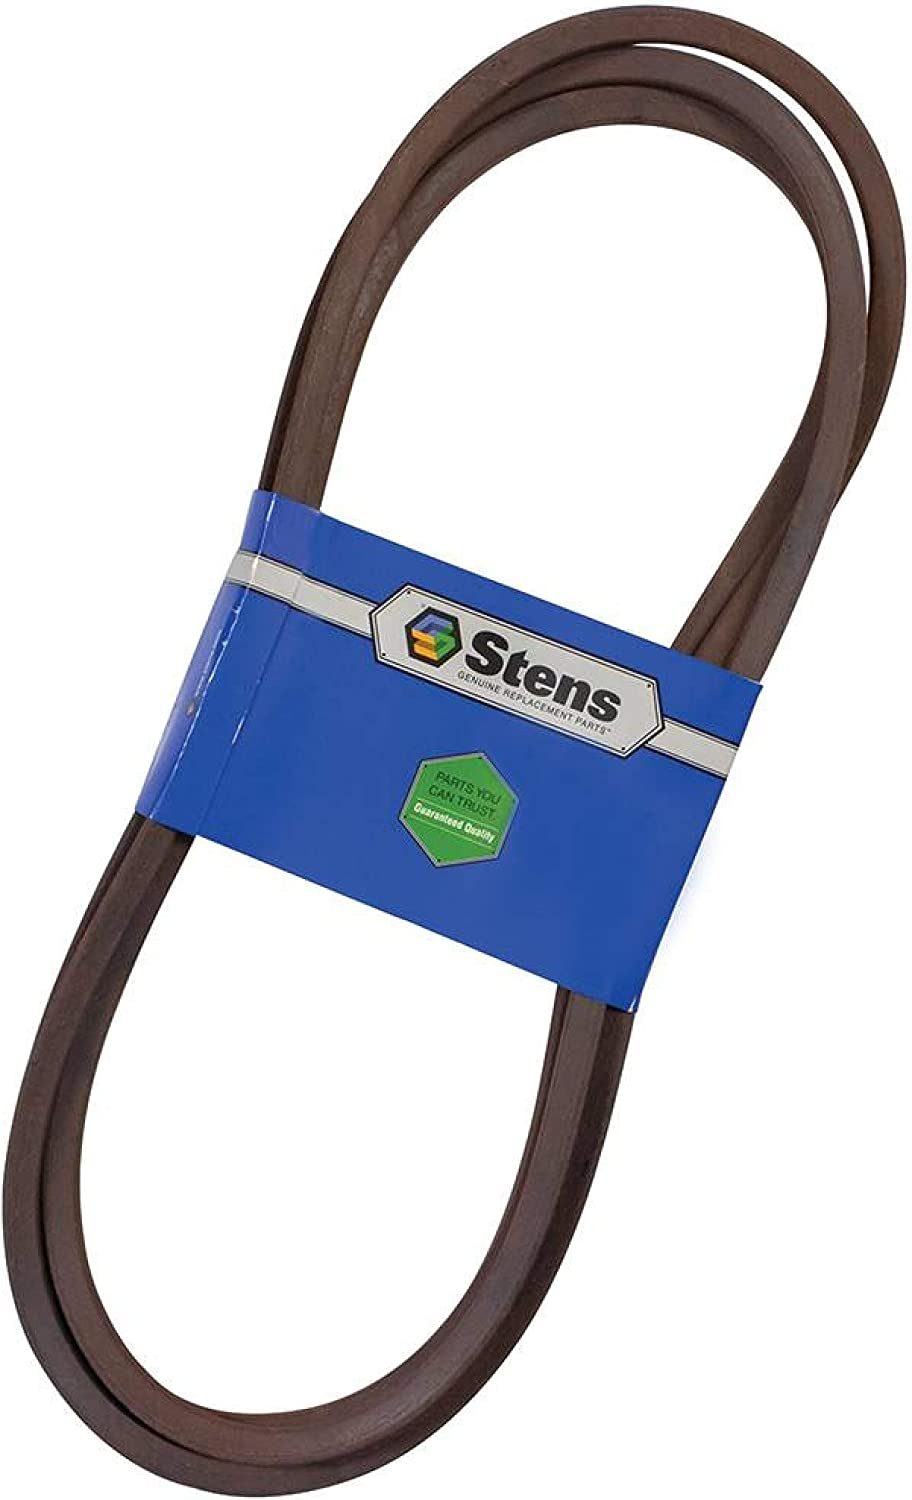 New Stens OEM Replacement Belt 265-279 for Ferris 5021420